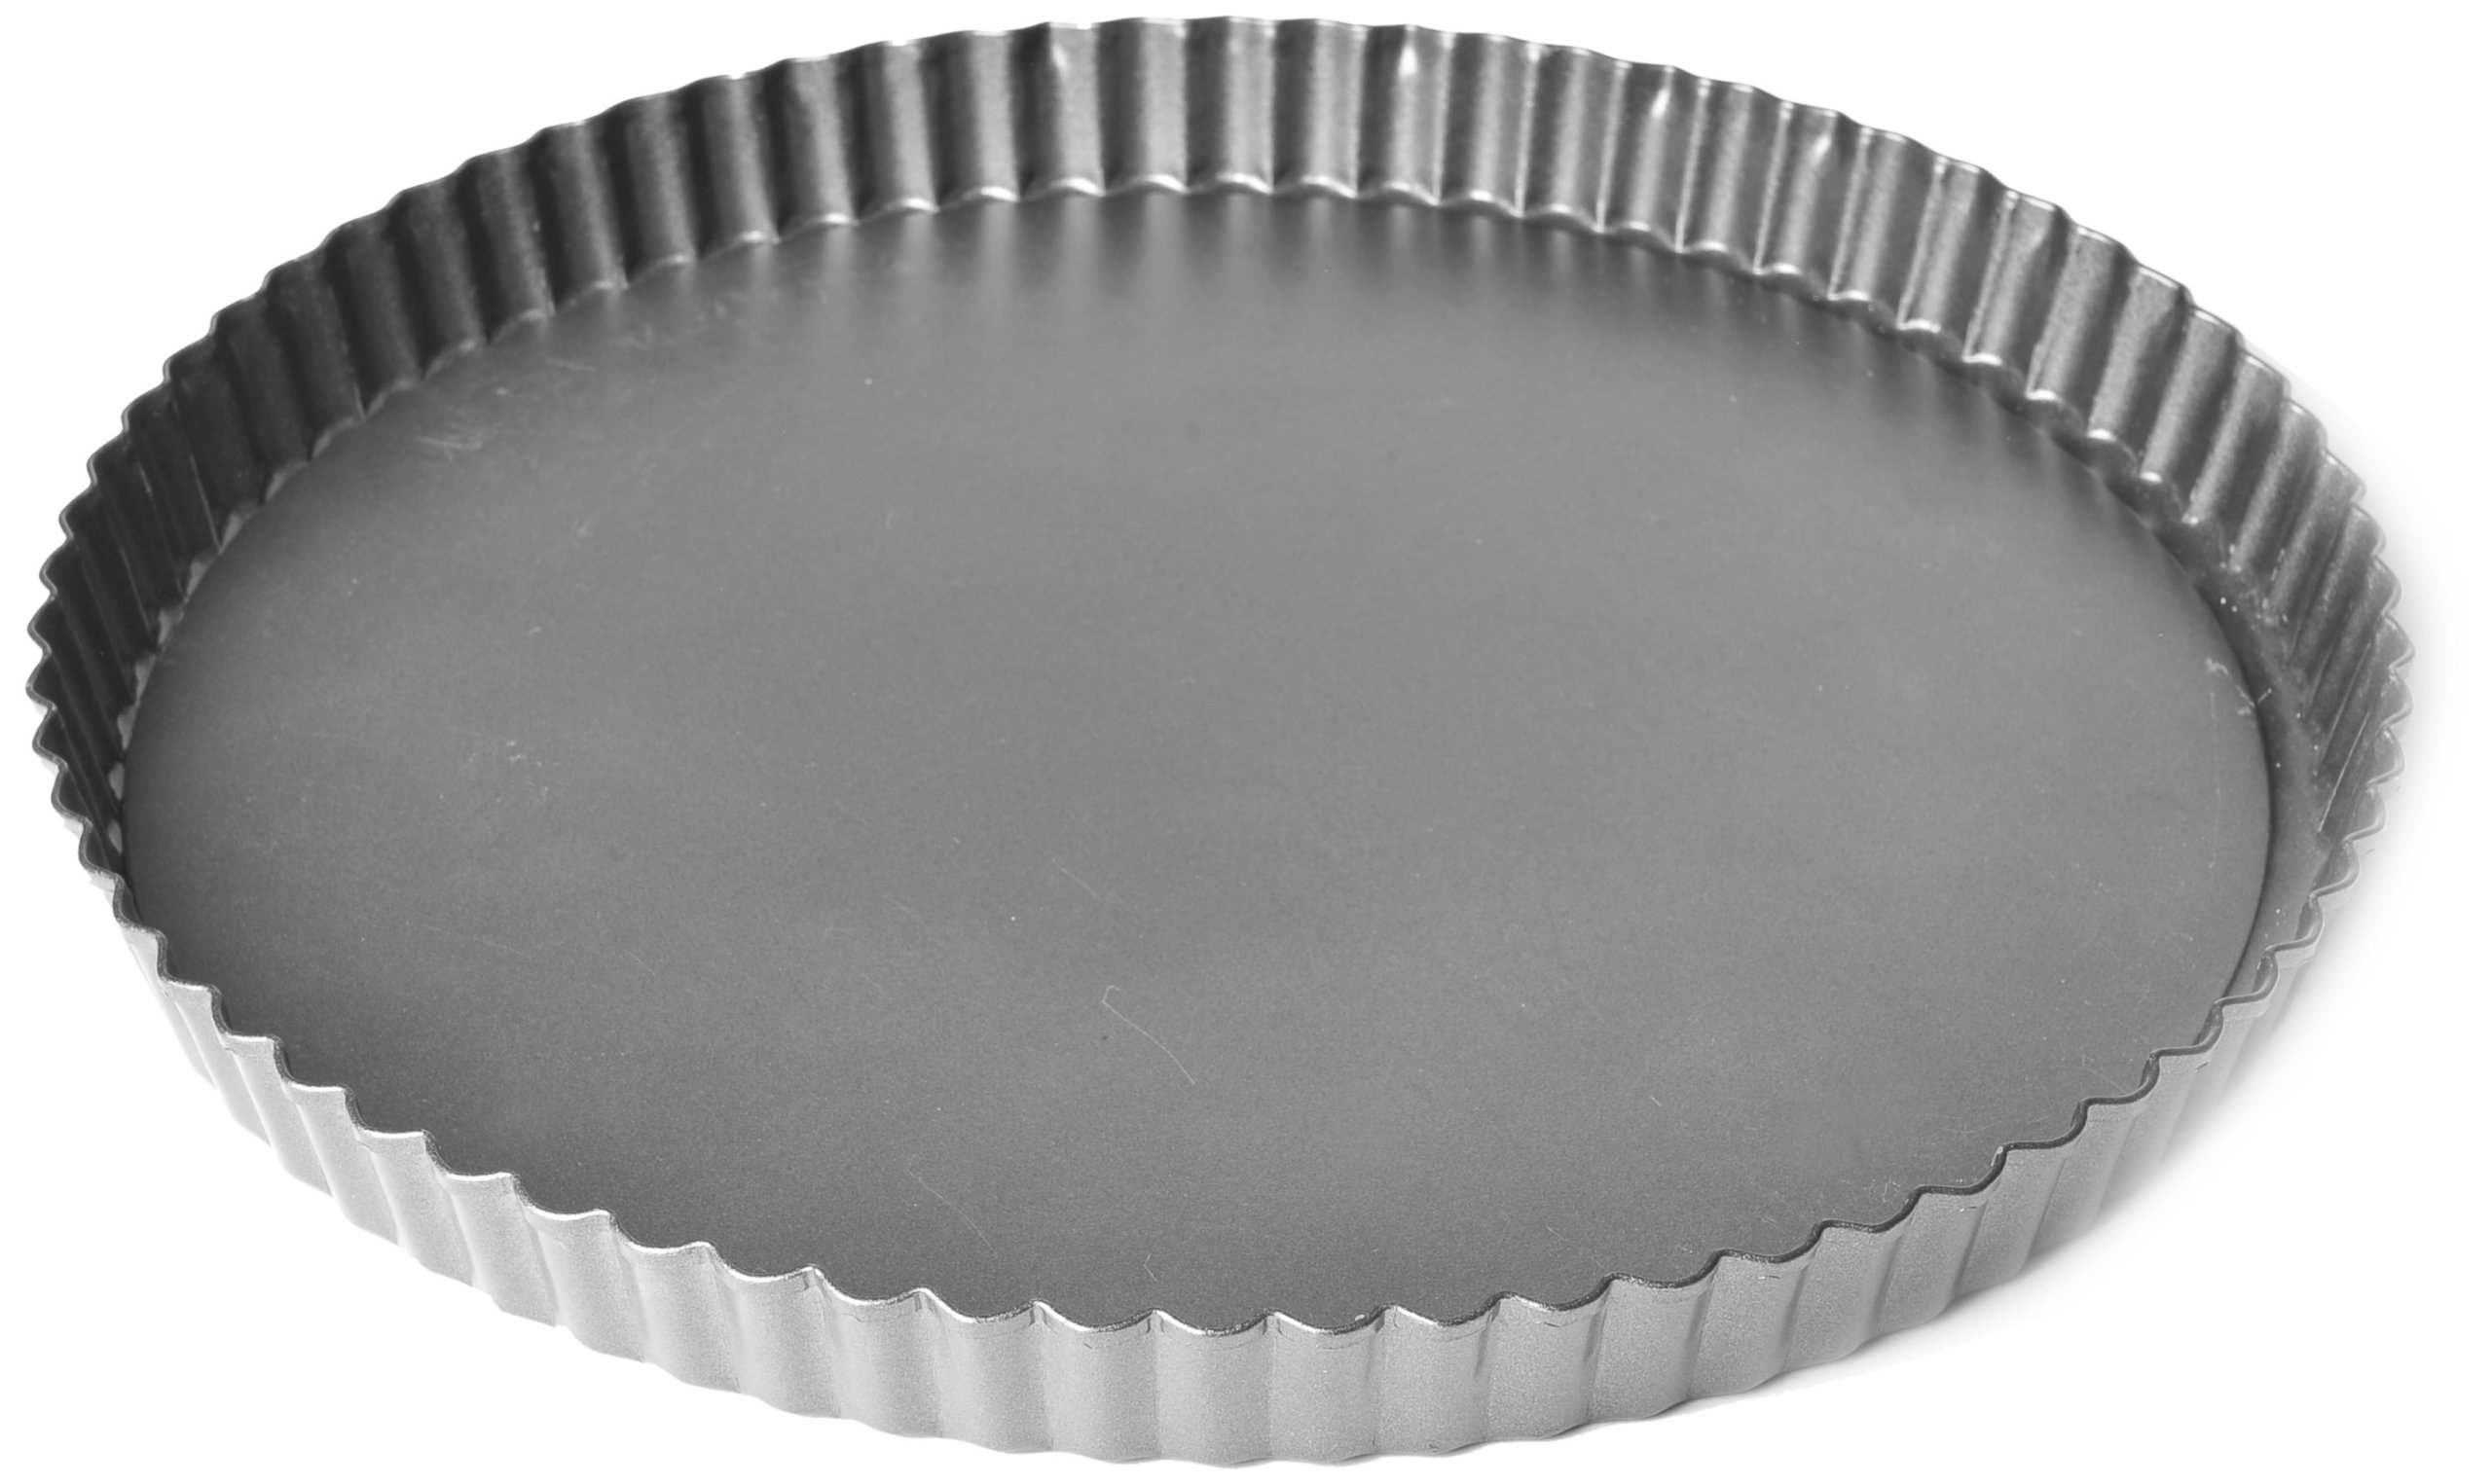 Chloe's Kitchen 203-163 12-Inch Round Quiche Removable Bottom by MDC Housewares Inc. (Image #1)